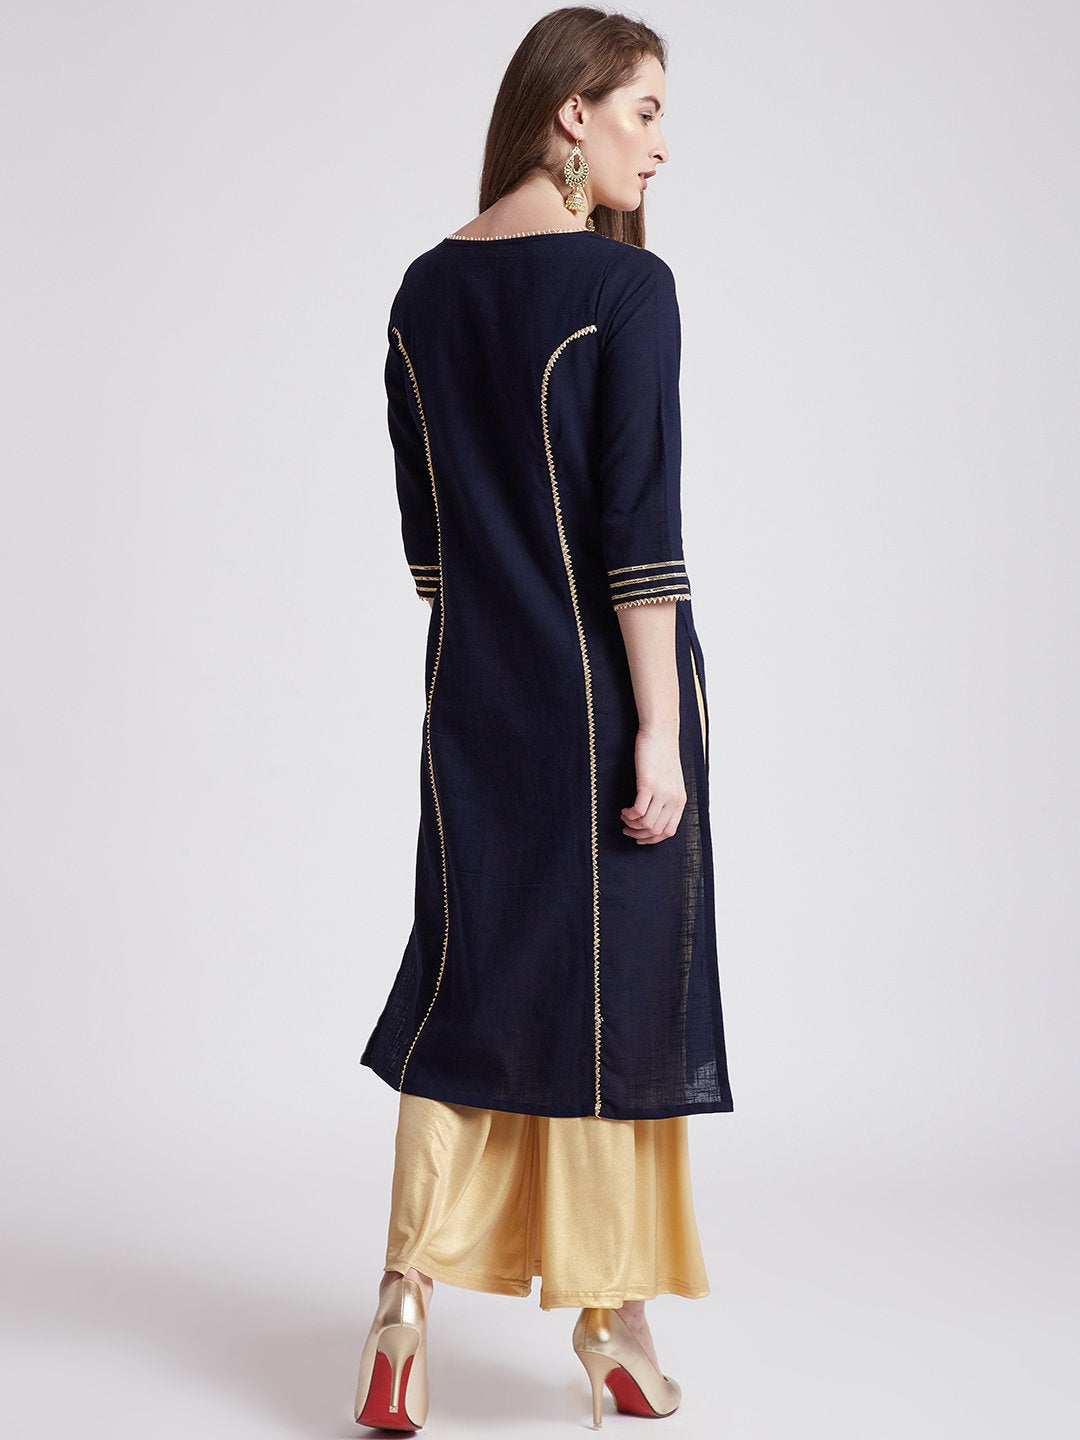 Indian ethnic long kurta in navy blue colour with gota detailing